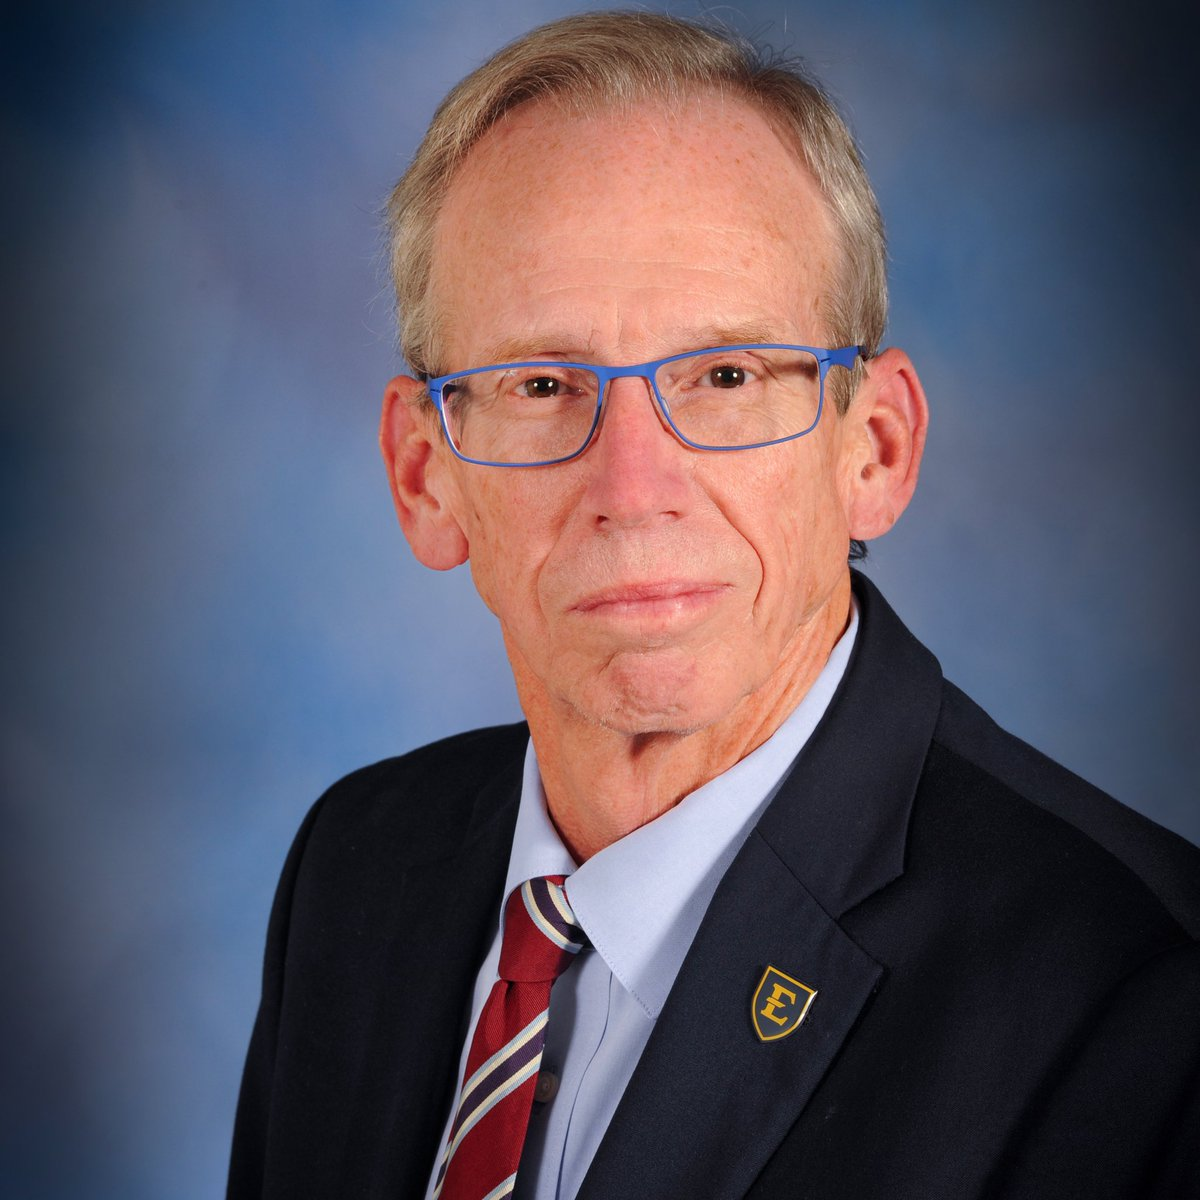 School Board Appreciation Week. 💚📚⭐️ Jim Welch was elected to the@kcs_districtBoard of Education in 2019 for his 1st 4-year term & elected president of the Board in 2020. Jim is a native of Kingsport & earned his degrees from@etsu& the@utknoxville.#appreciationpost https://t.co/2EWIXAVgli